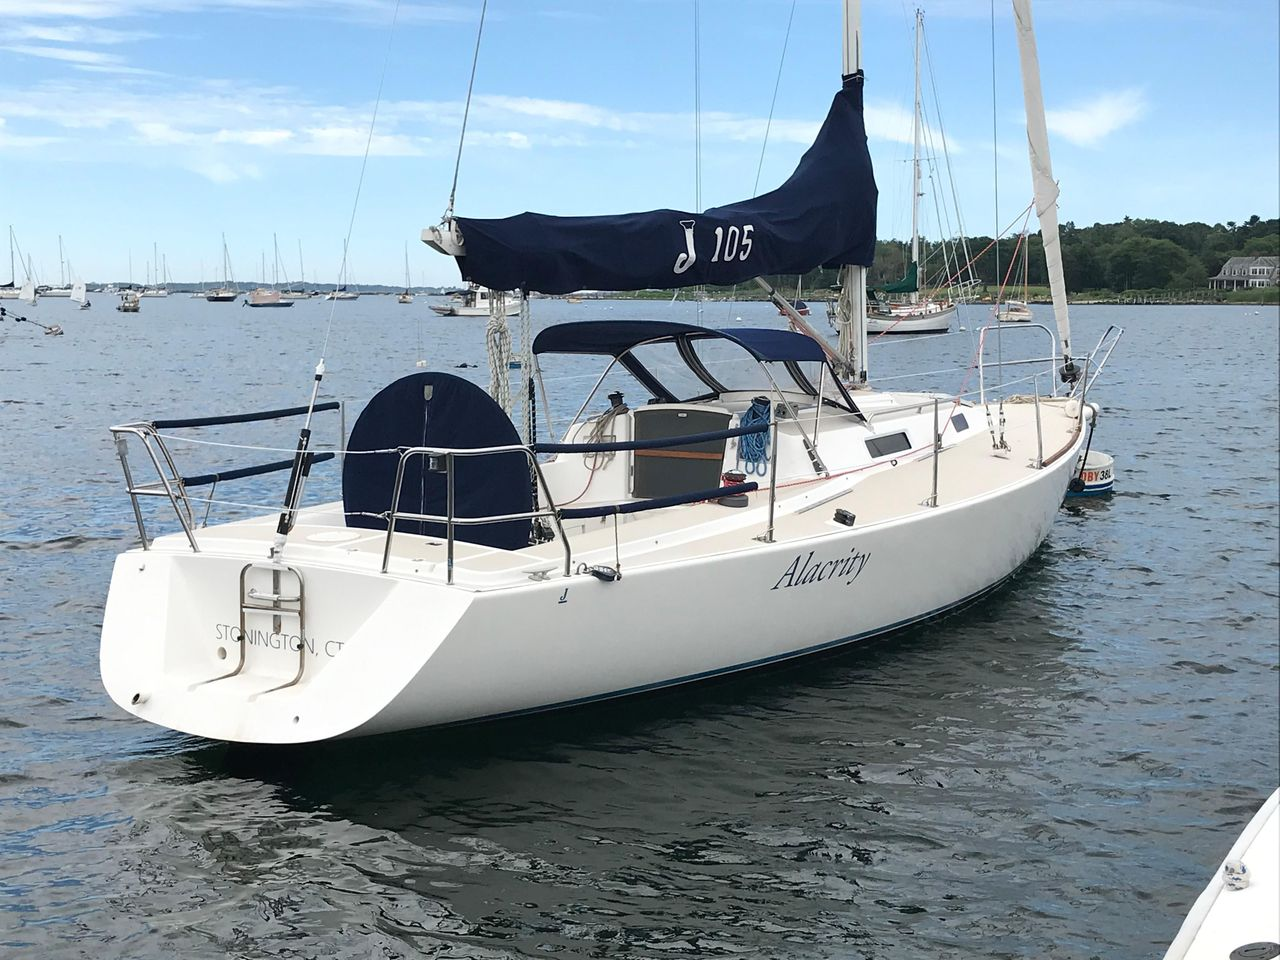 1997 Used J Boats J/105 Racer and Cruiser Sailboat For Sale